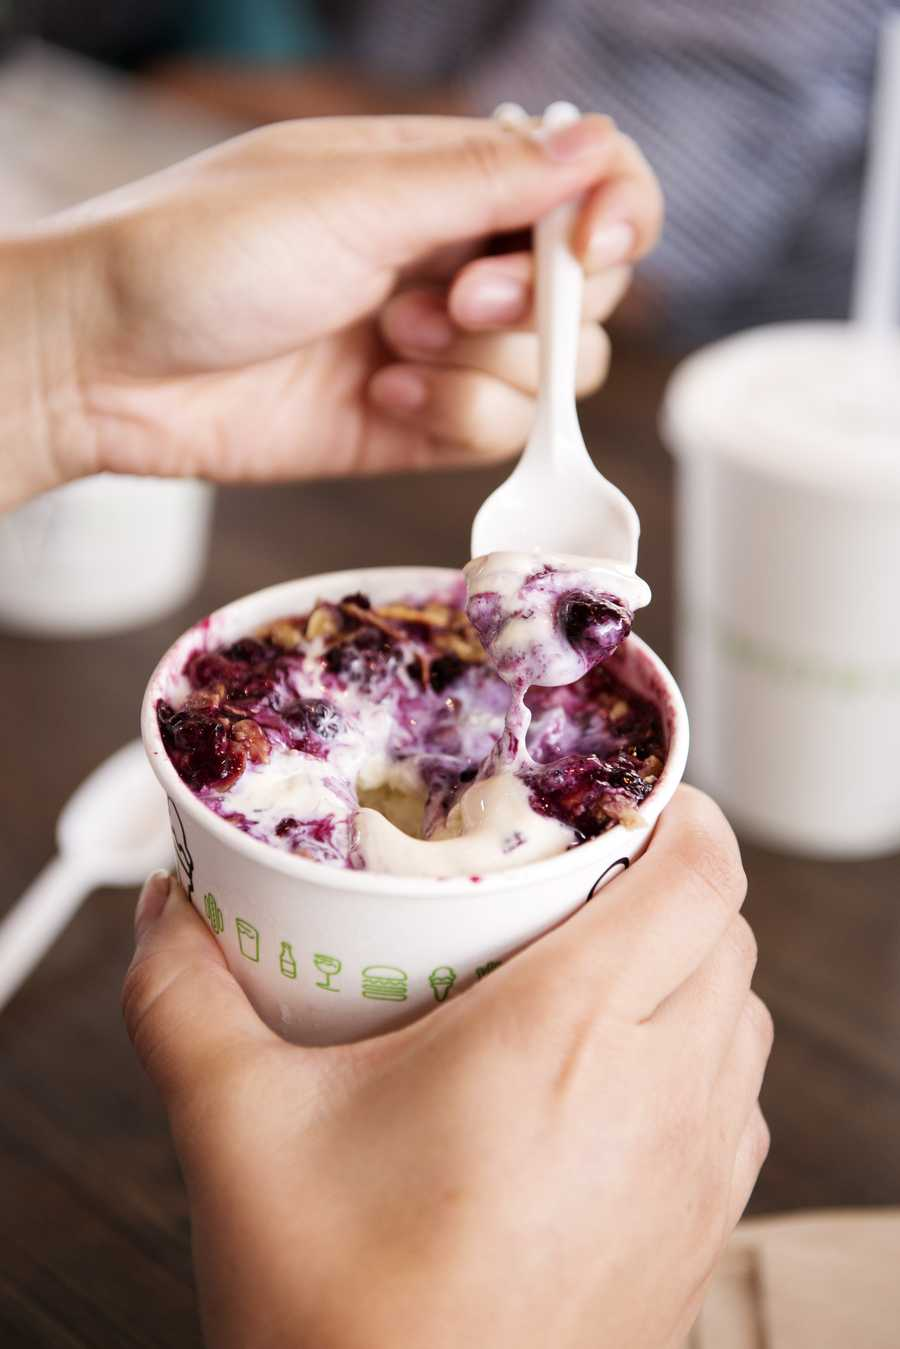 10.The restaurant offers Concretes, which is a frozen custard ice cream blended at high speed with mix-ins and are unique and location-inspired at each Shake Shack.